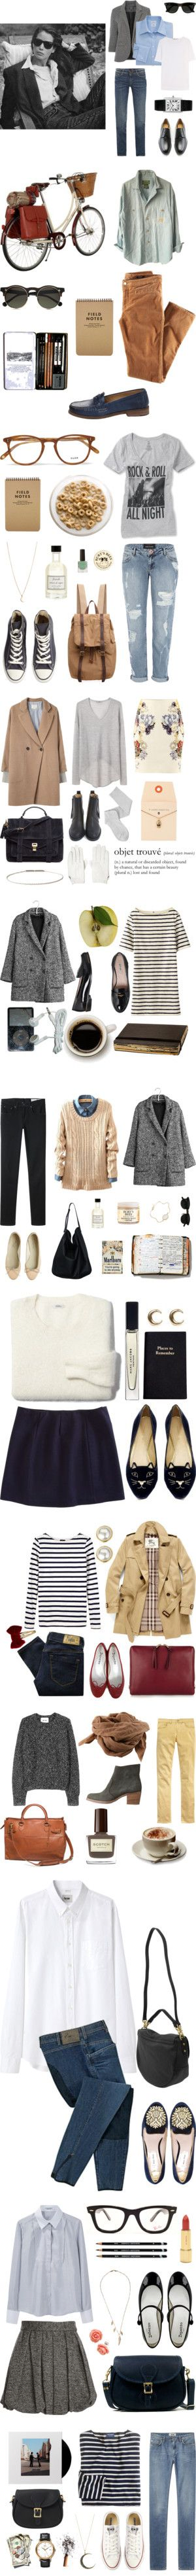 "Outfit Layout:""College Wear"" by tealrhapsody on Polyvore, but 50 something's like this style everyday"